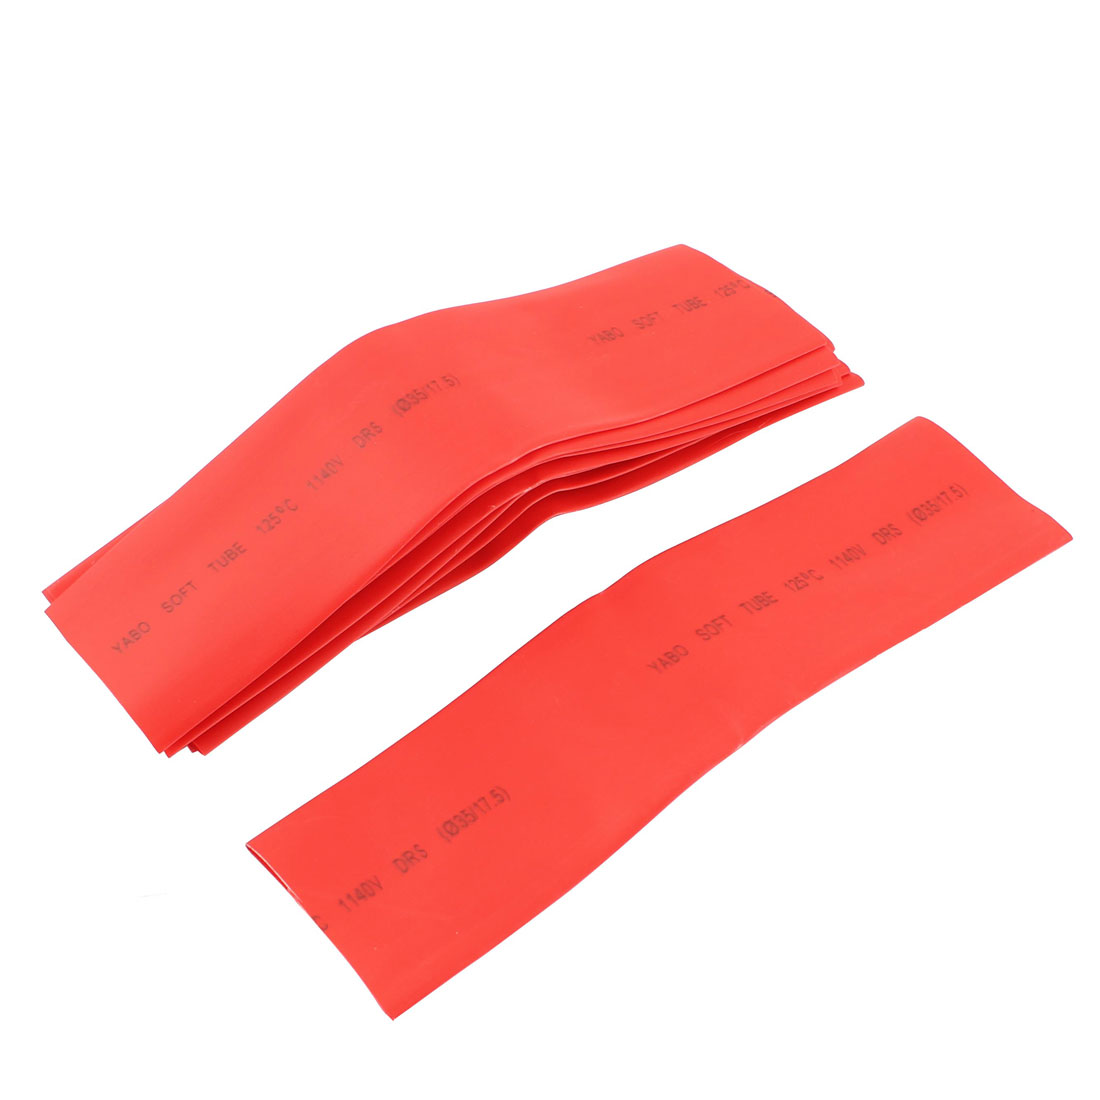 Polyolefin Heat Shrinkable Tube Sleeving 2:1 Shrink Ratio 35mm x 20cm Red 10Pcs